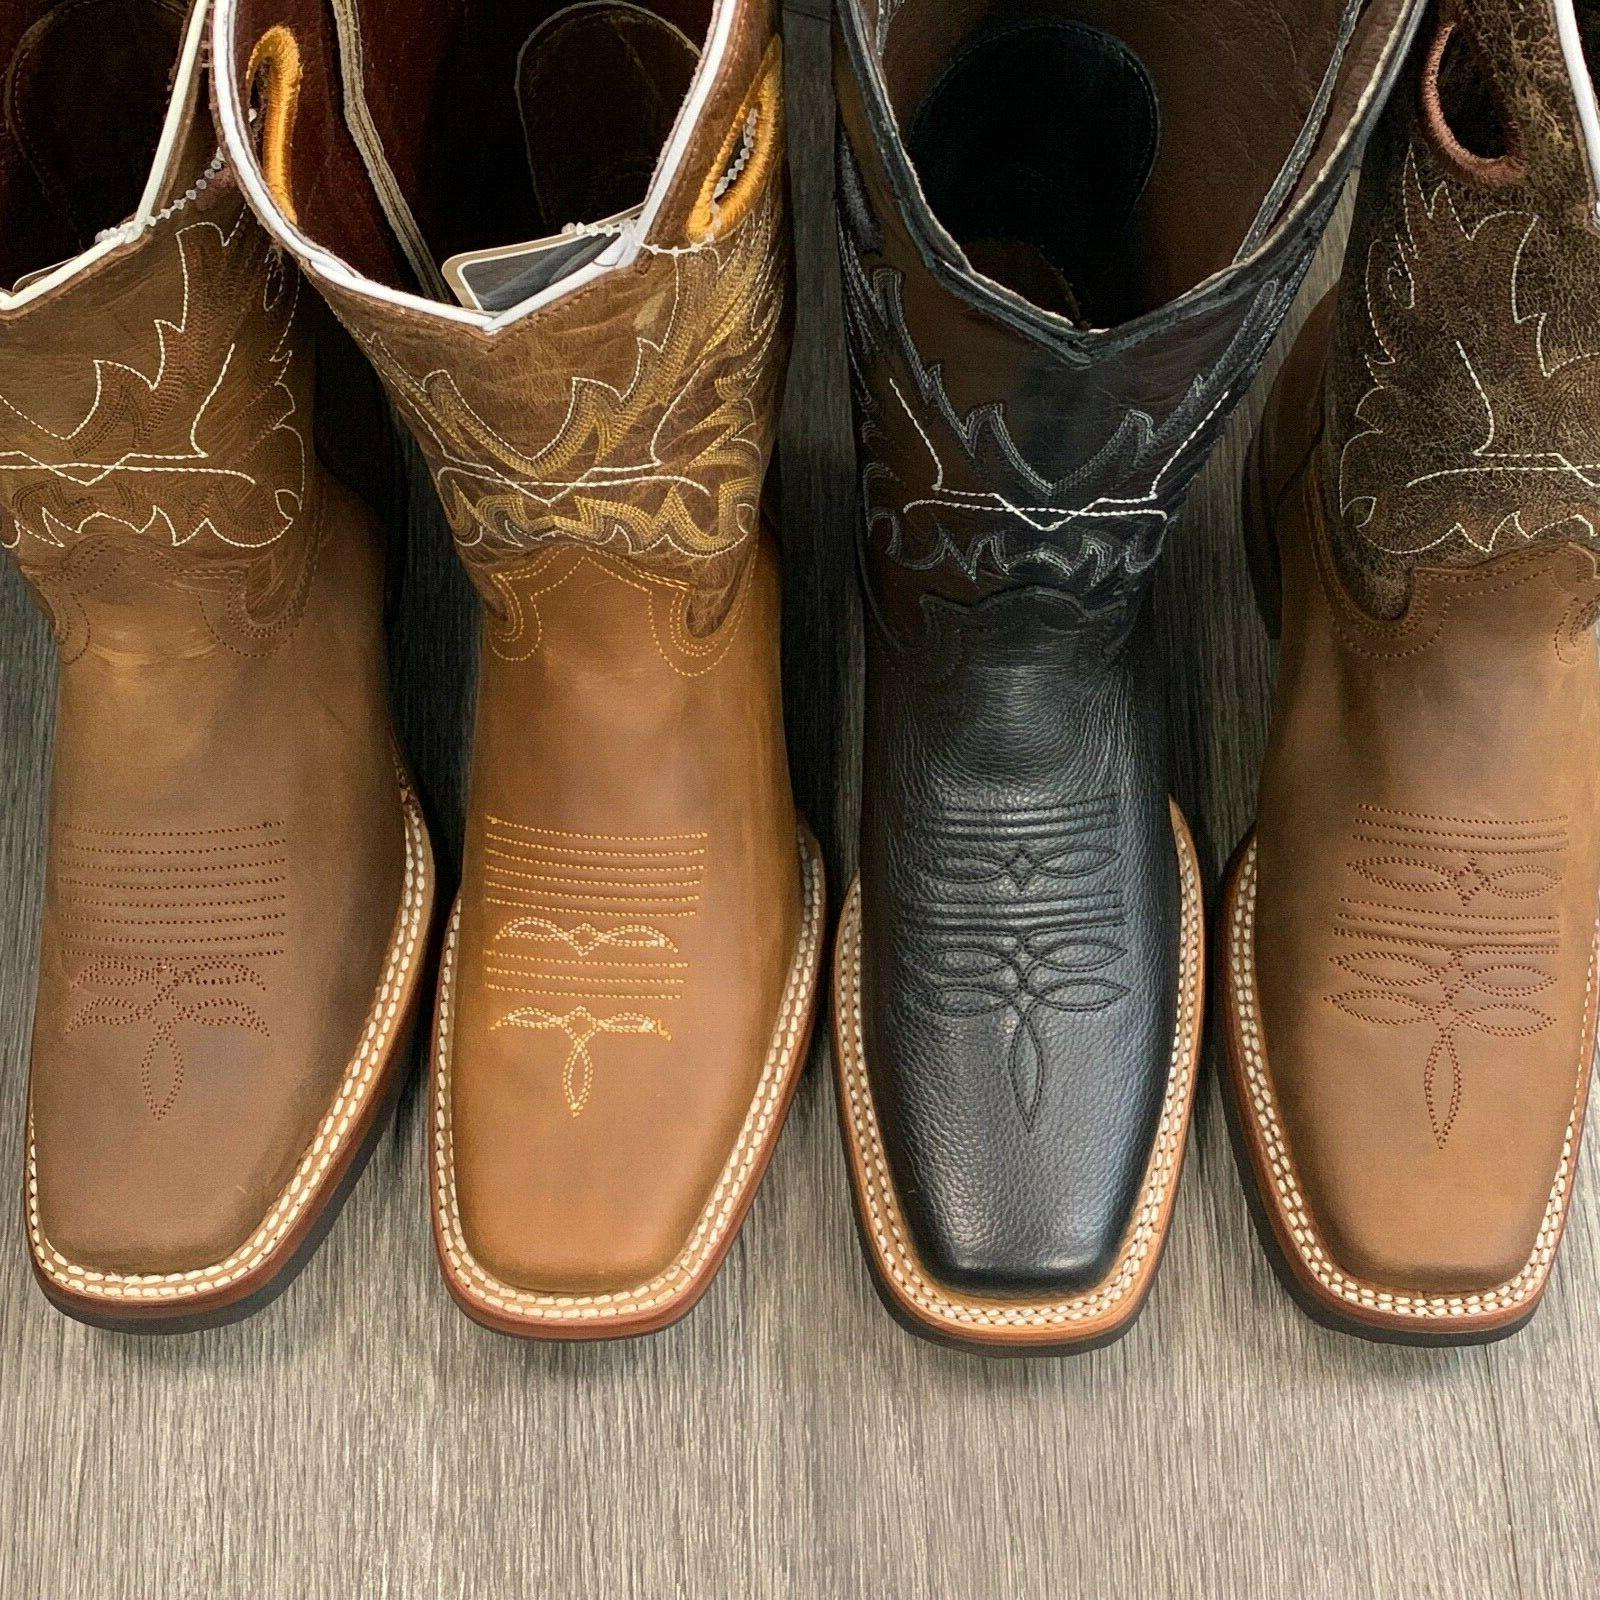 MEN'S COWBOY GENUINE SQUARE TOE BOOTS